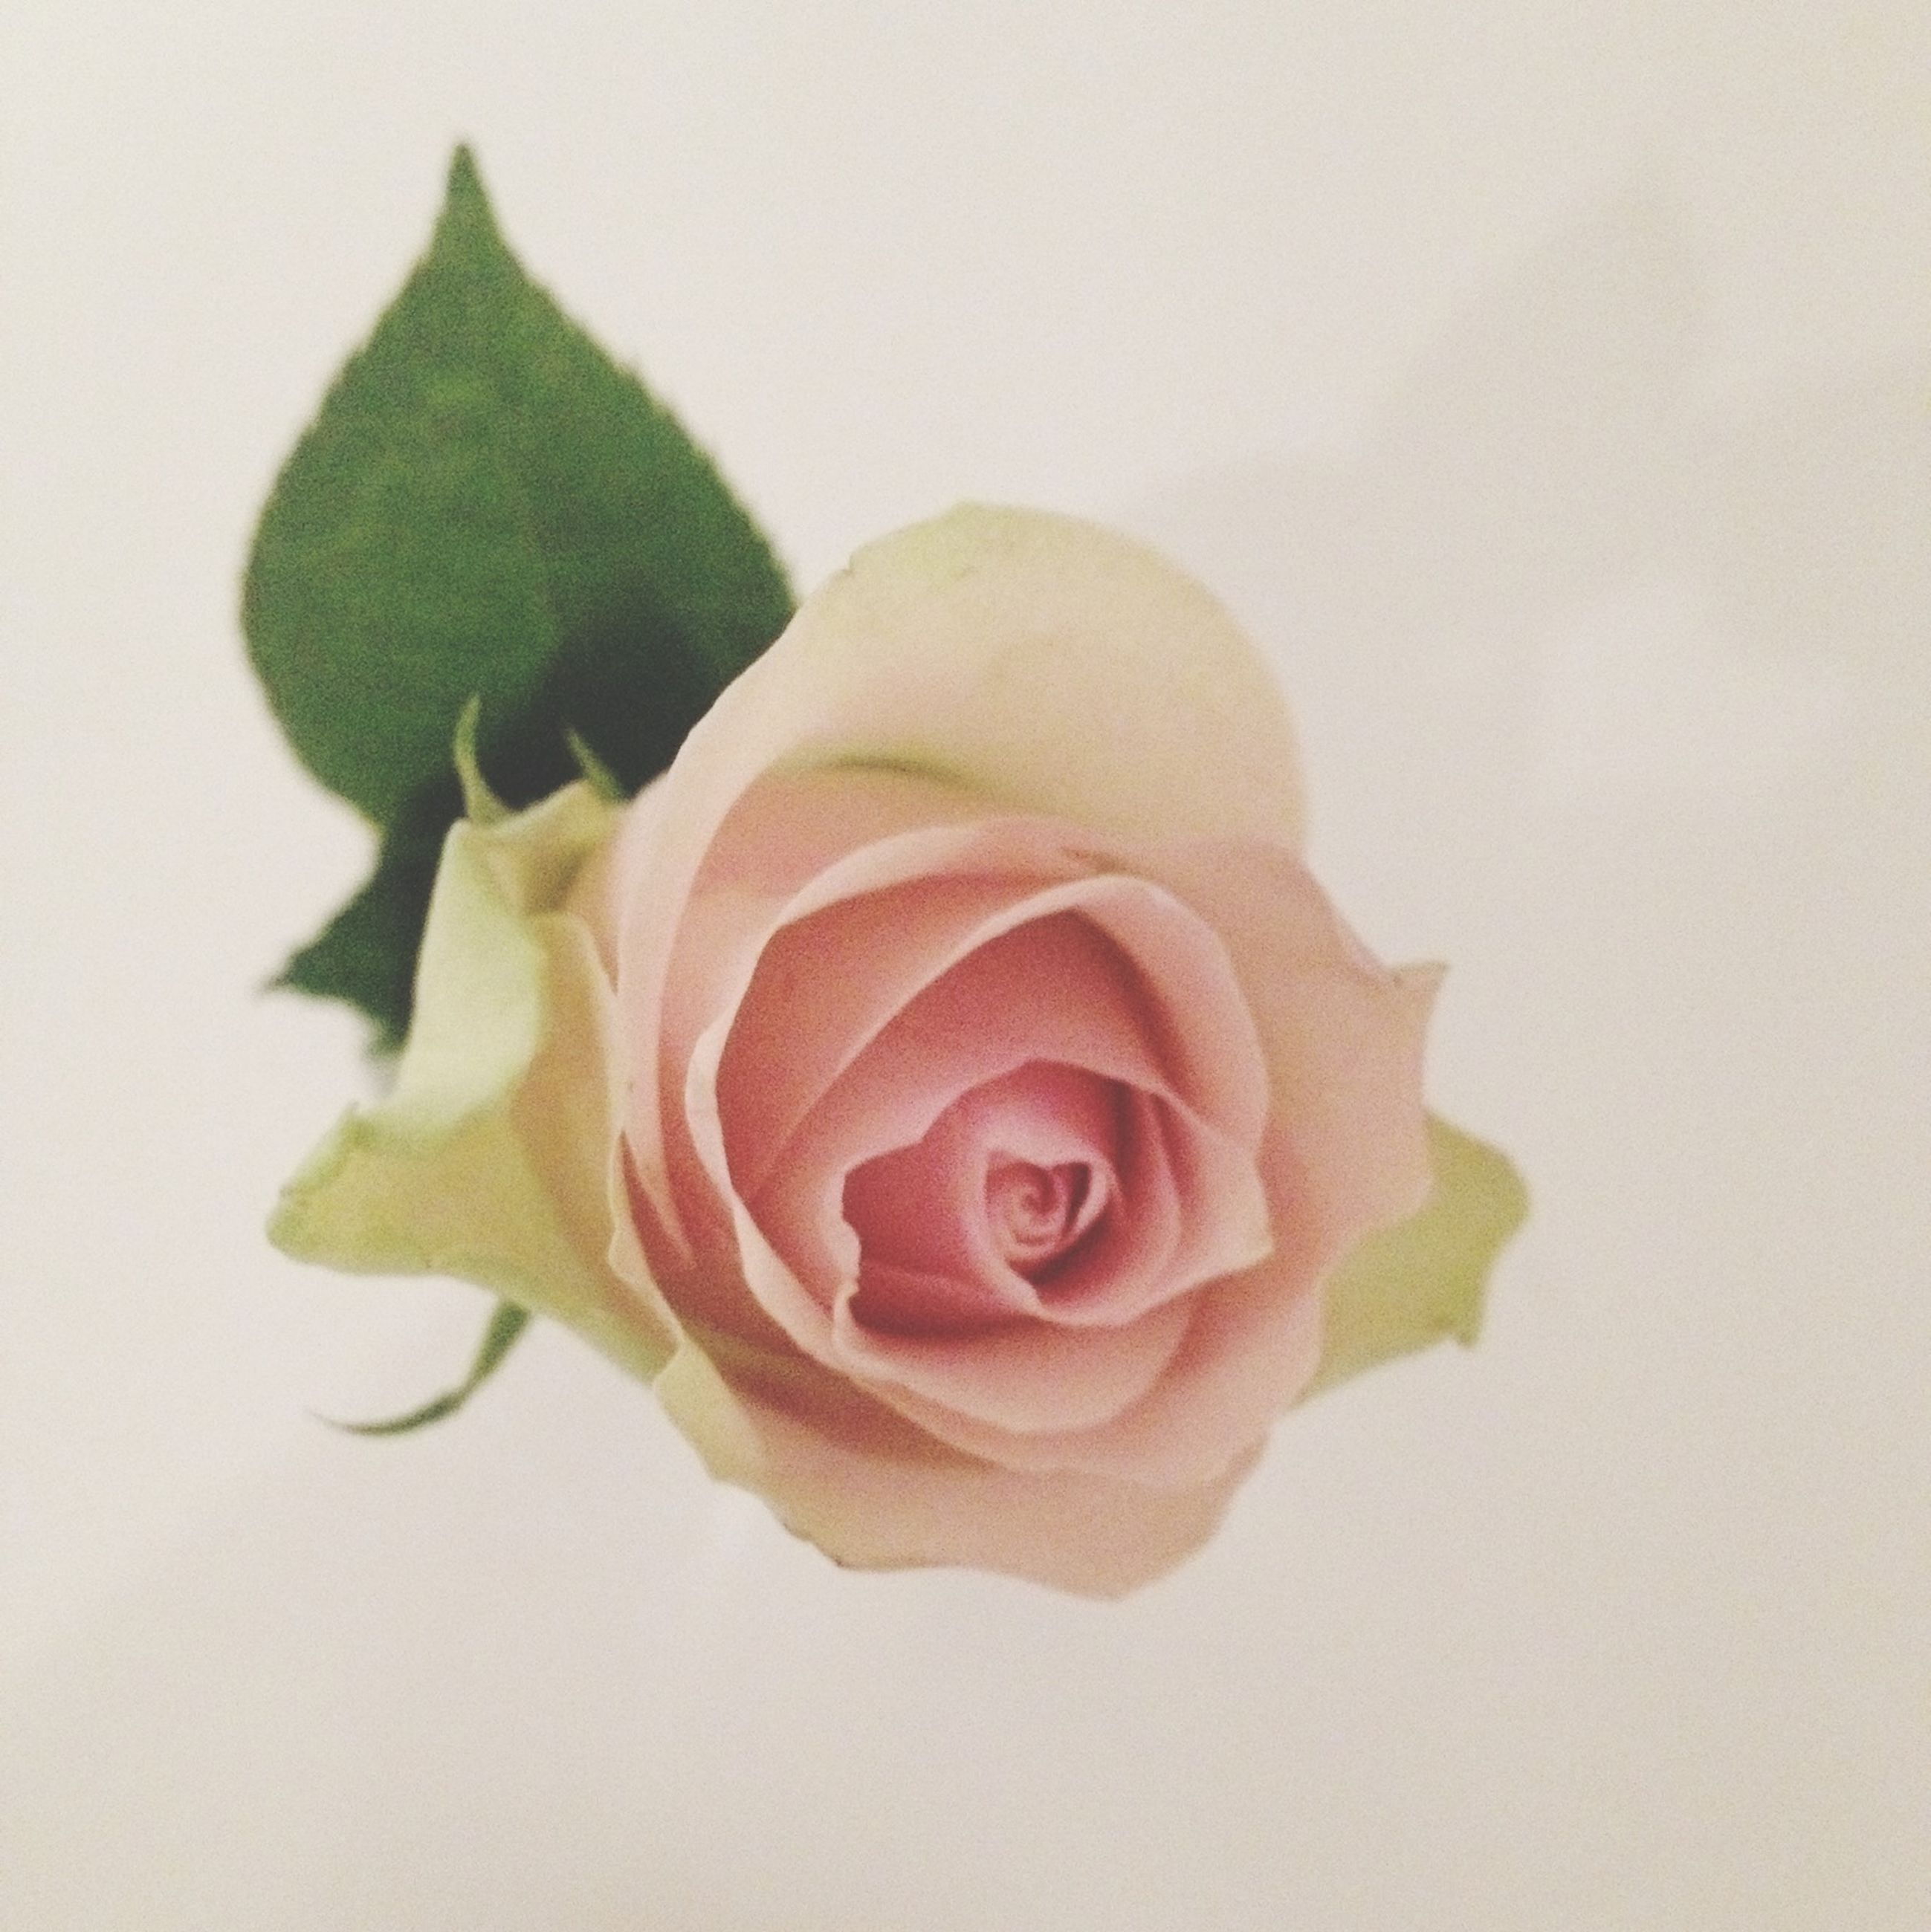 rose - flower, flower, freshness, petal, white background, flower head, indoors, close-up, fragility, rose, studio shot, pink color, still life, beauty in nature, single flower, red, high angle view, no people, leaf, pink